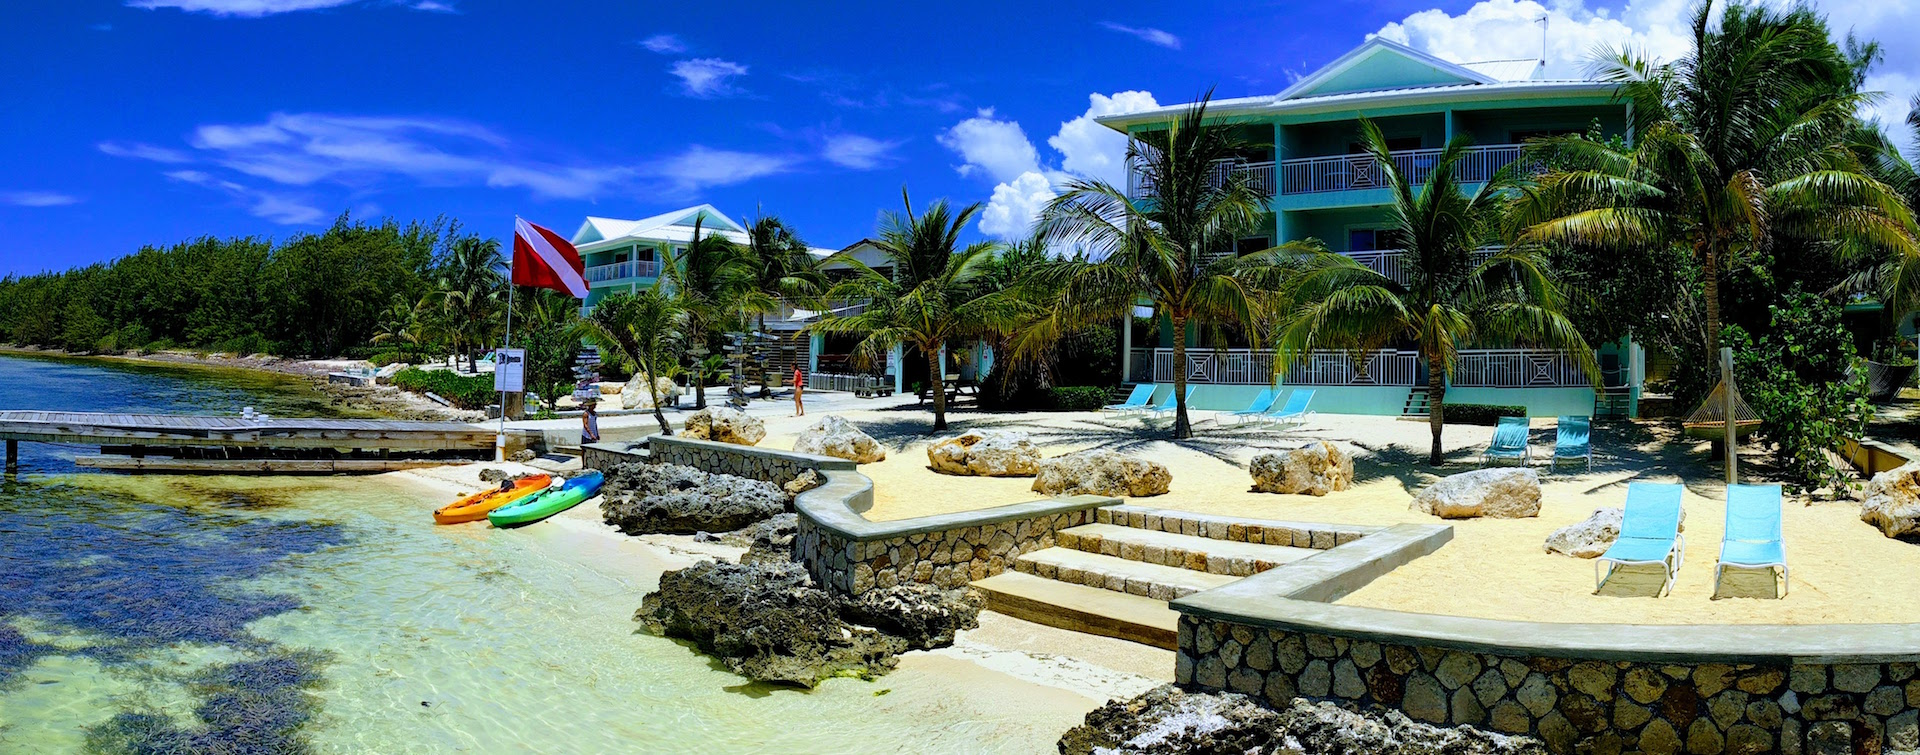 Compass Point Dive Resort in Grand Cayman